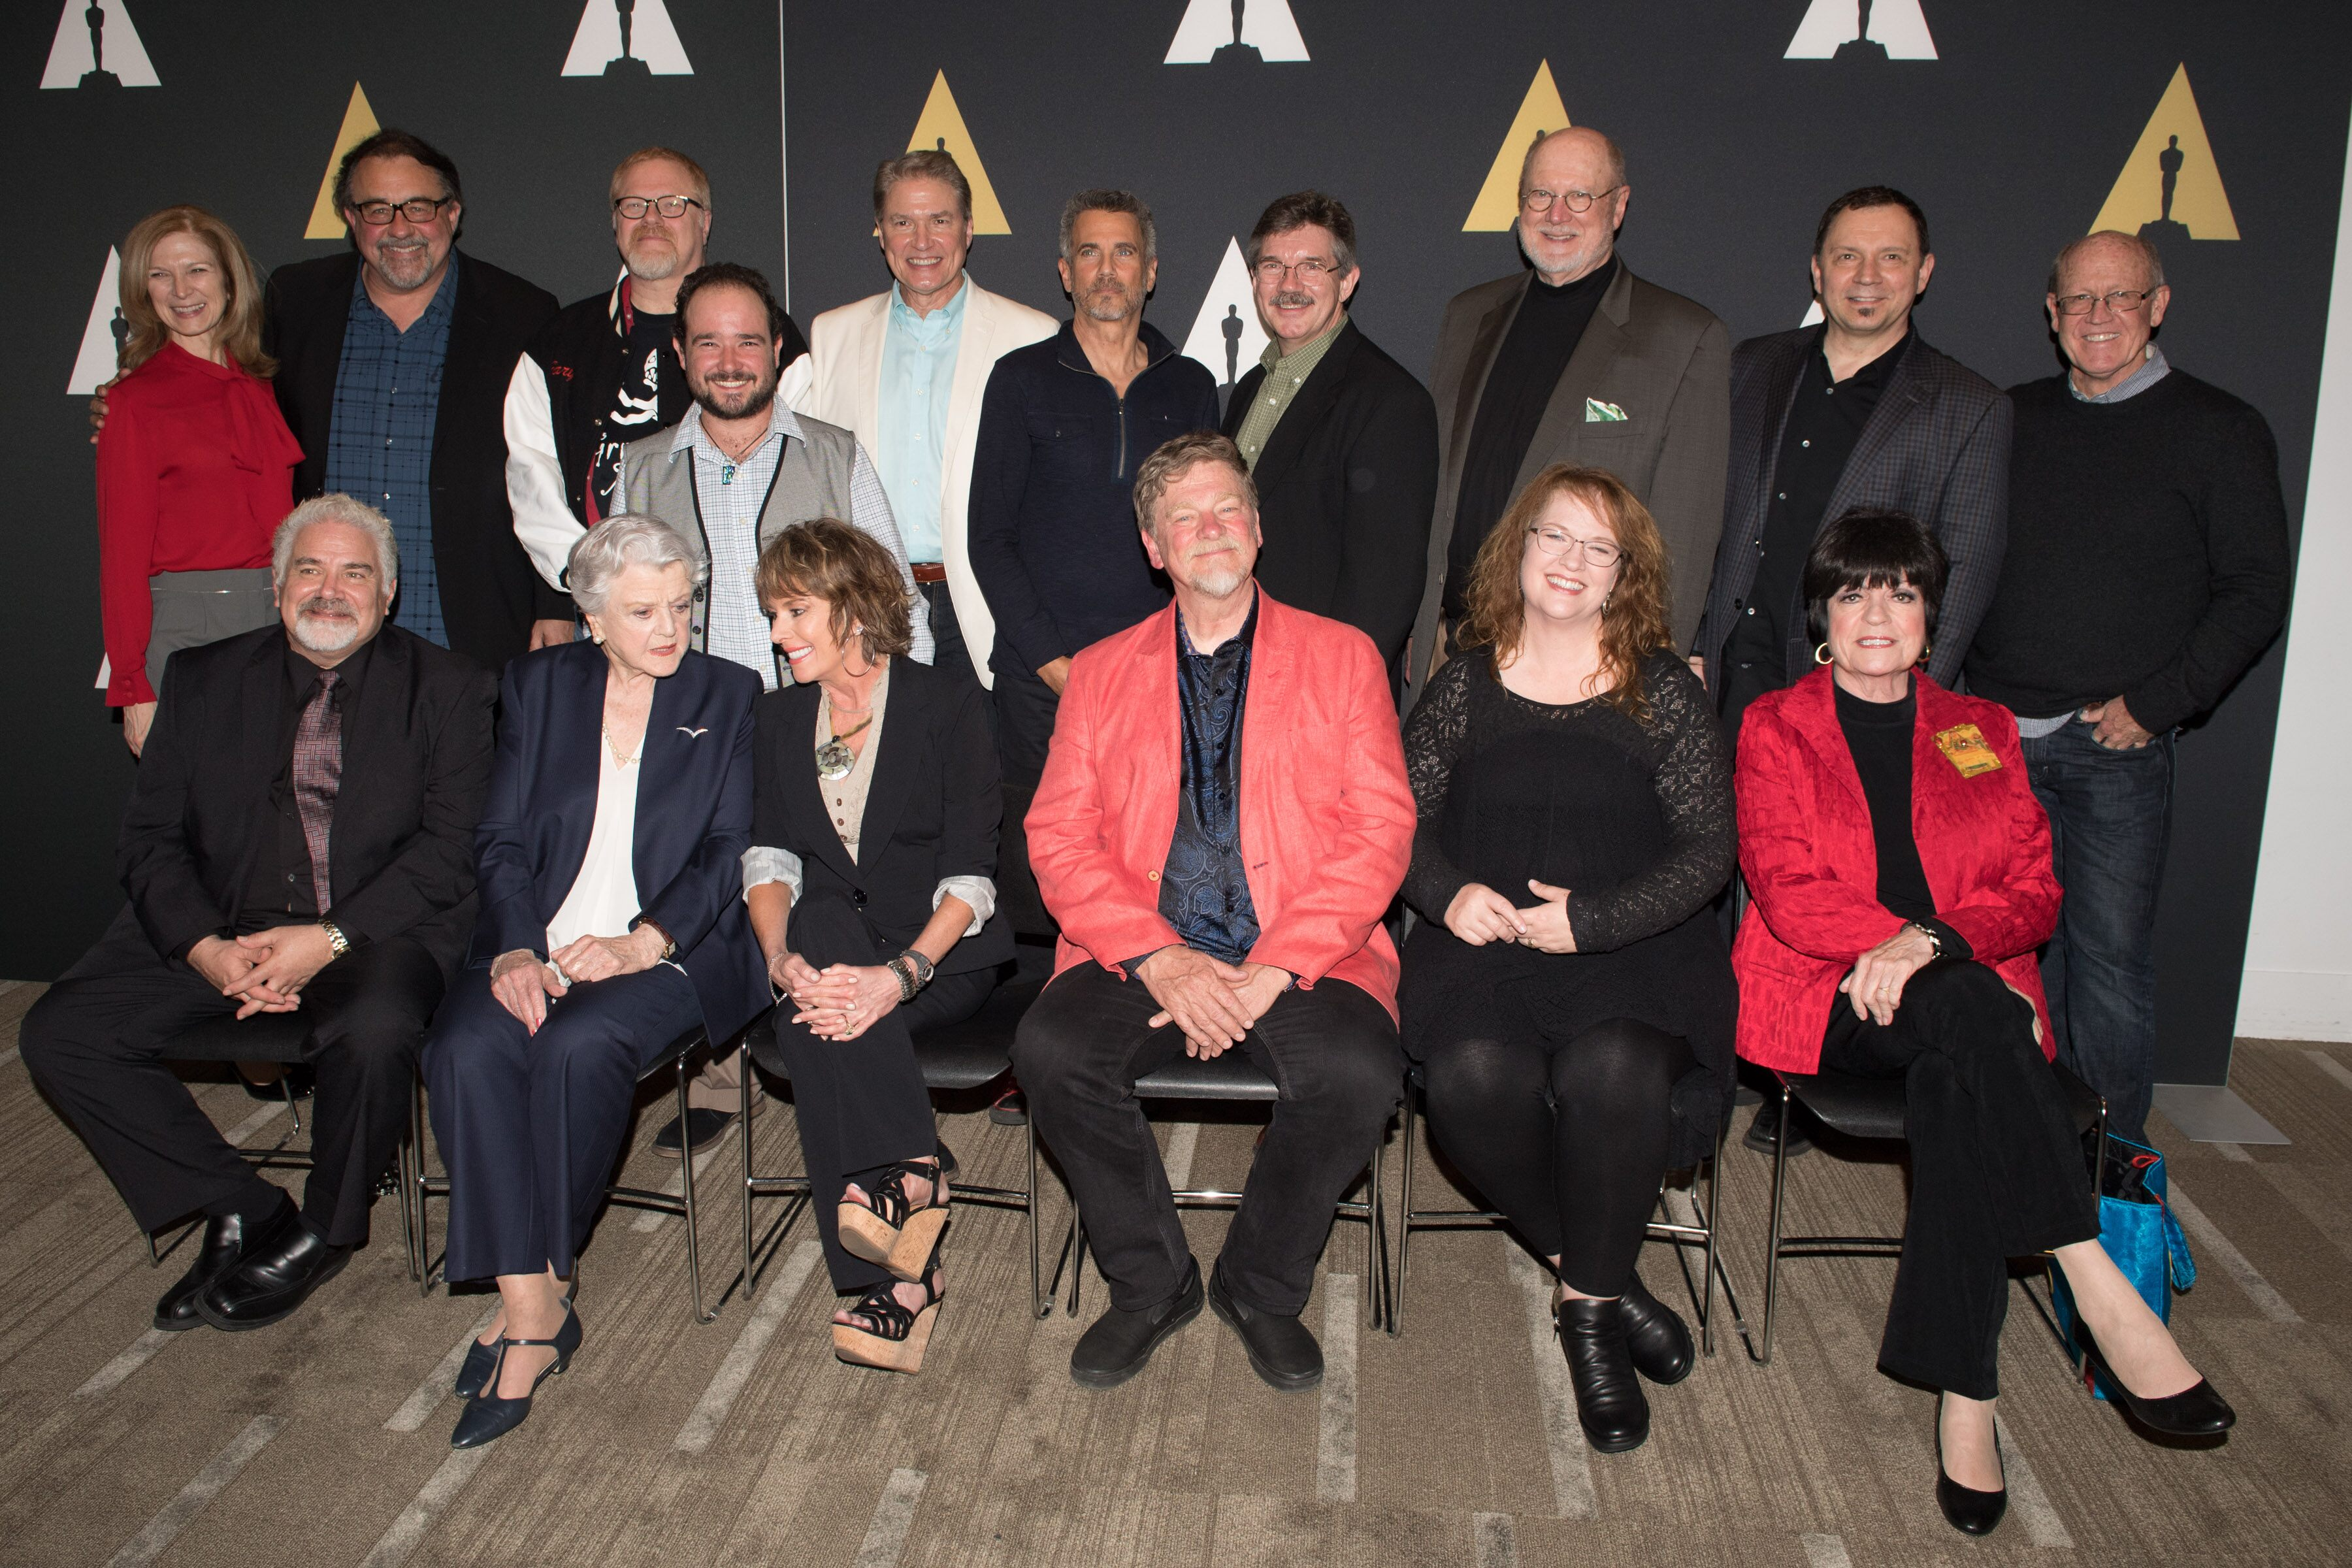 Pictured (front row left to right):  Actor Jesse Corti, Actress Angela Lansbury, Actress Paige O'Hara, Story Supervisor Roger Allers, Key Story Artist Brenda Chapman and Actress Jo Anne Worley Pictured (back row left to right):  Academy CEO Dawn Hudson, Producer Don Hahn, Director Gary Trousdale, Actor Bradley Pierce, Actor Richard White, Actor Robby Benson, Animator Mark Henn, Actor David Ogden Stiers, Animator Andreas Deja and Animator Glen Keane